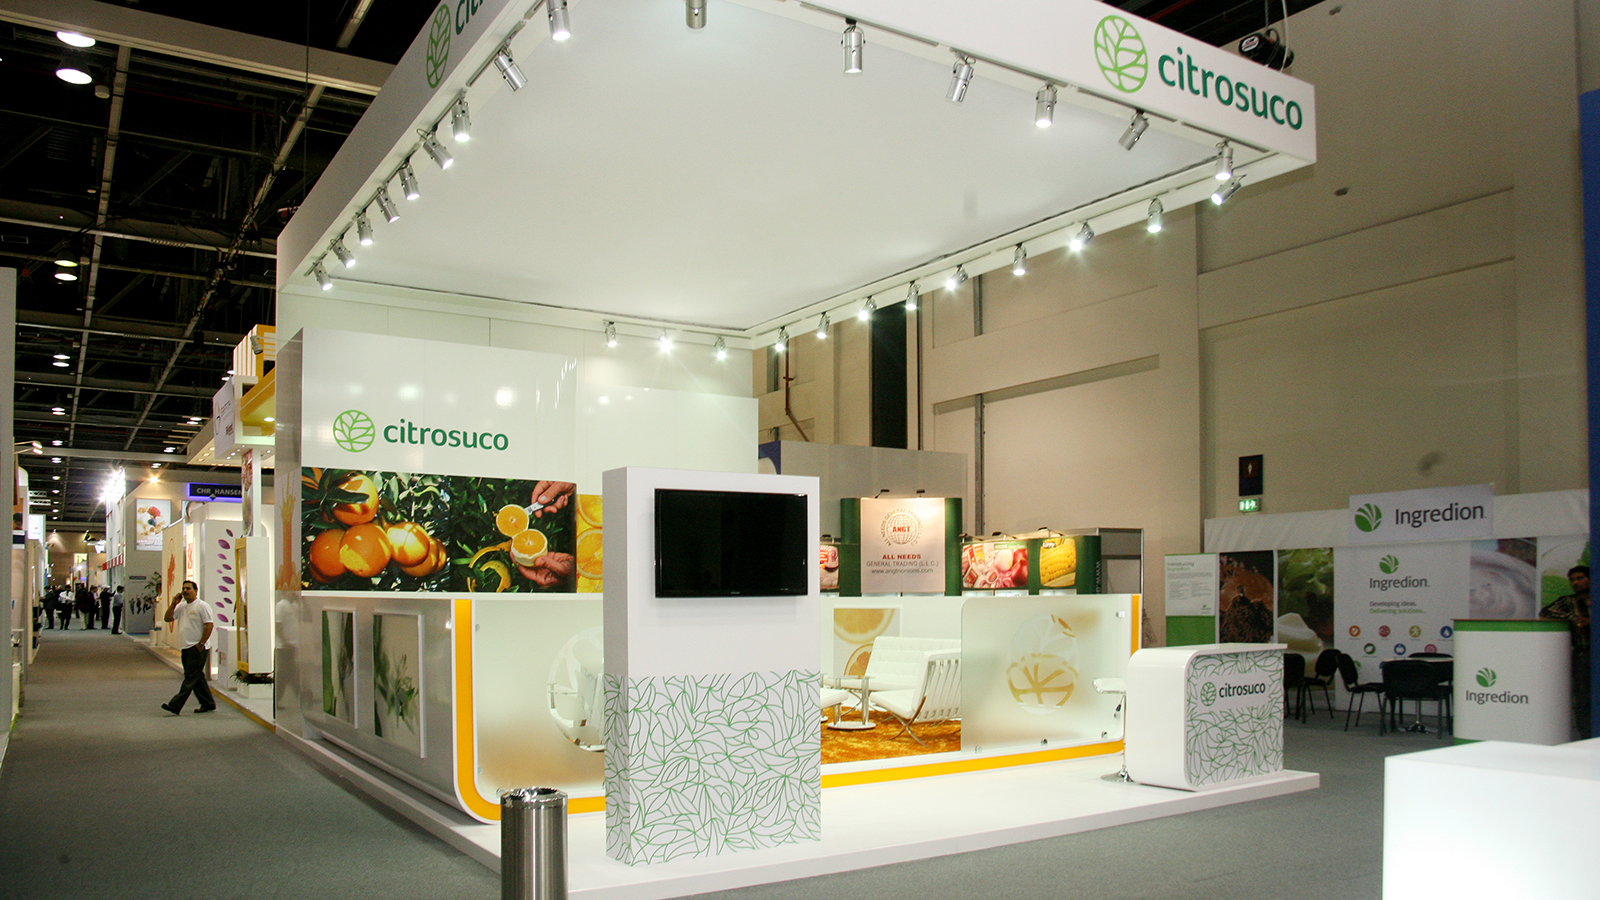 Citrosuco_Gulfood